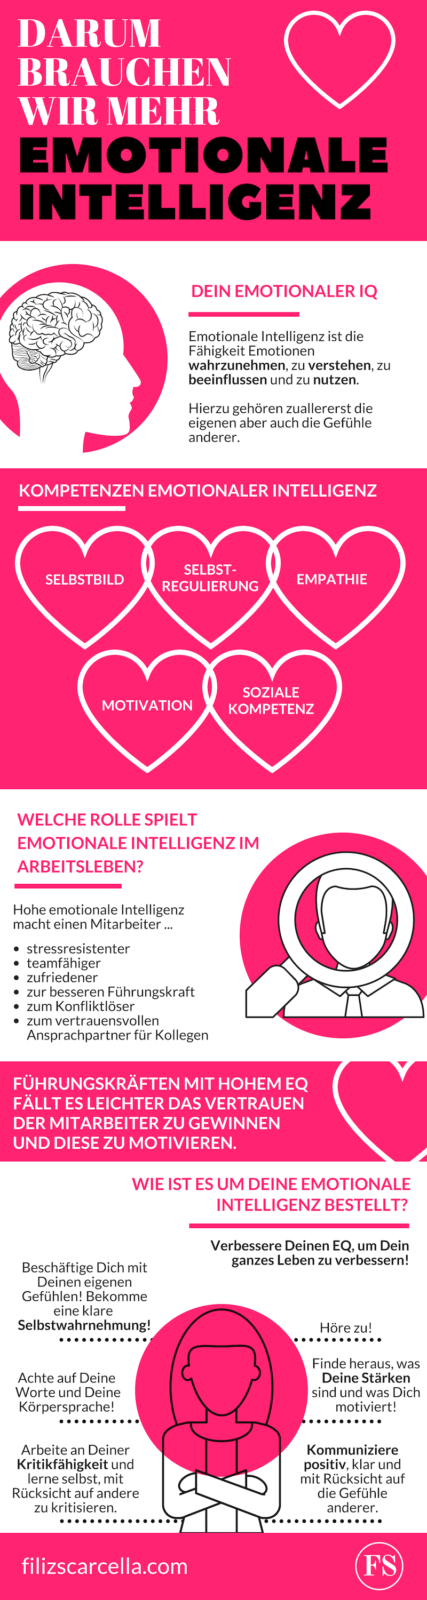 Infografik Emotionale Intelligenz - Was ist Emotionale Intelligenz